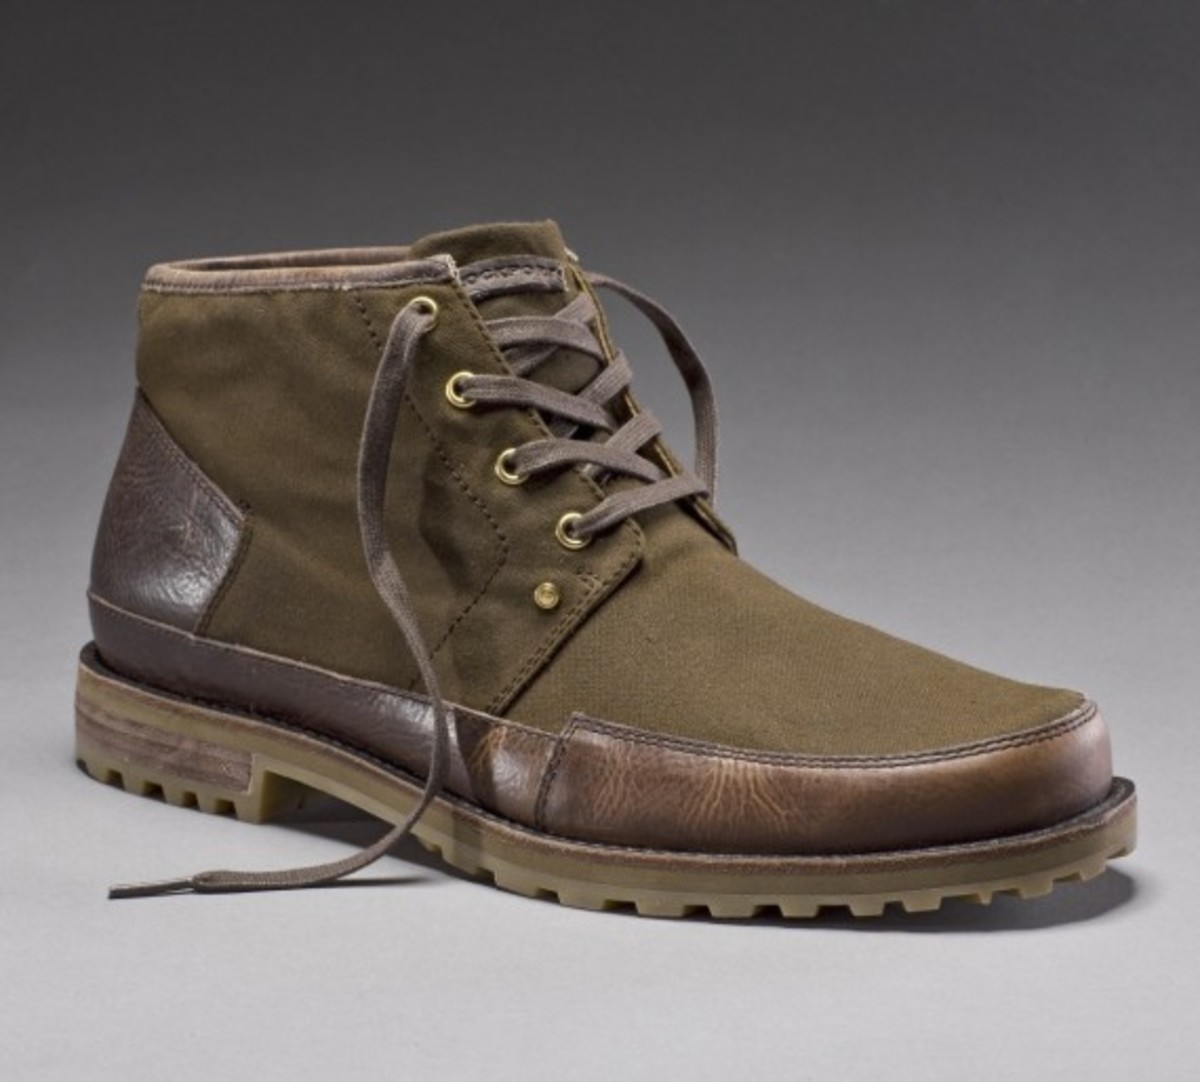 barbour-rockport-chukka-boots-01